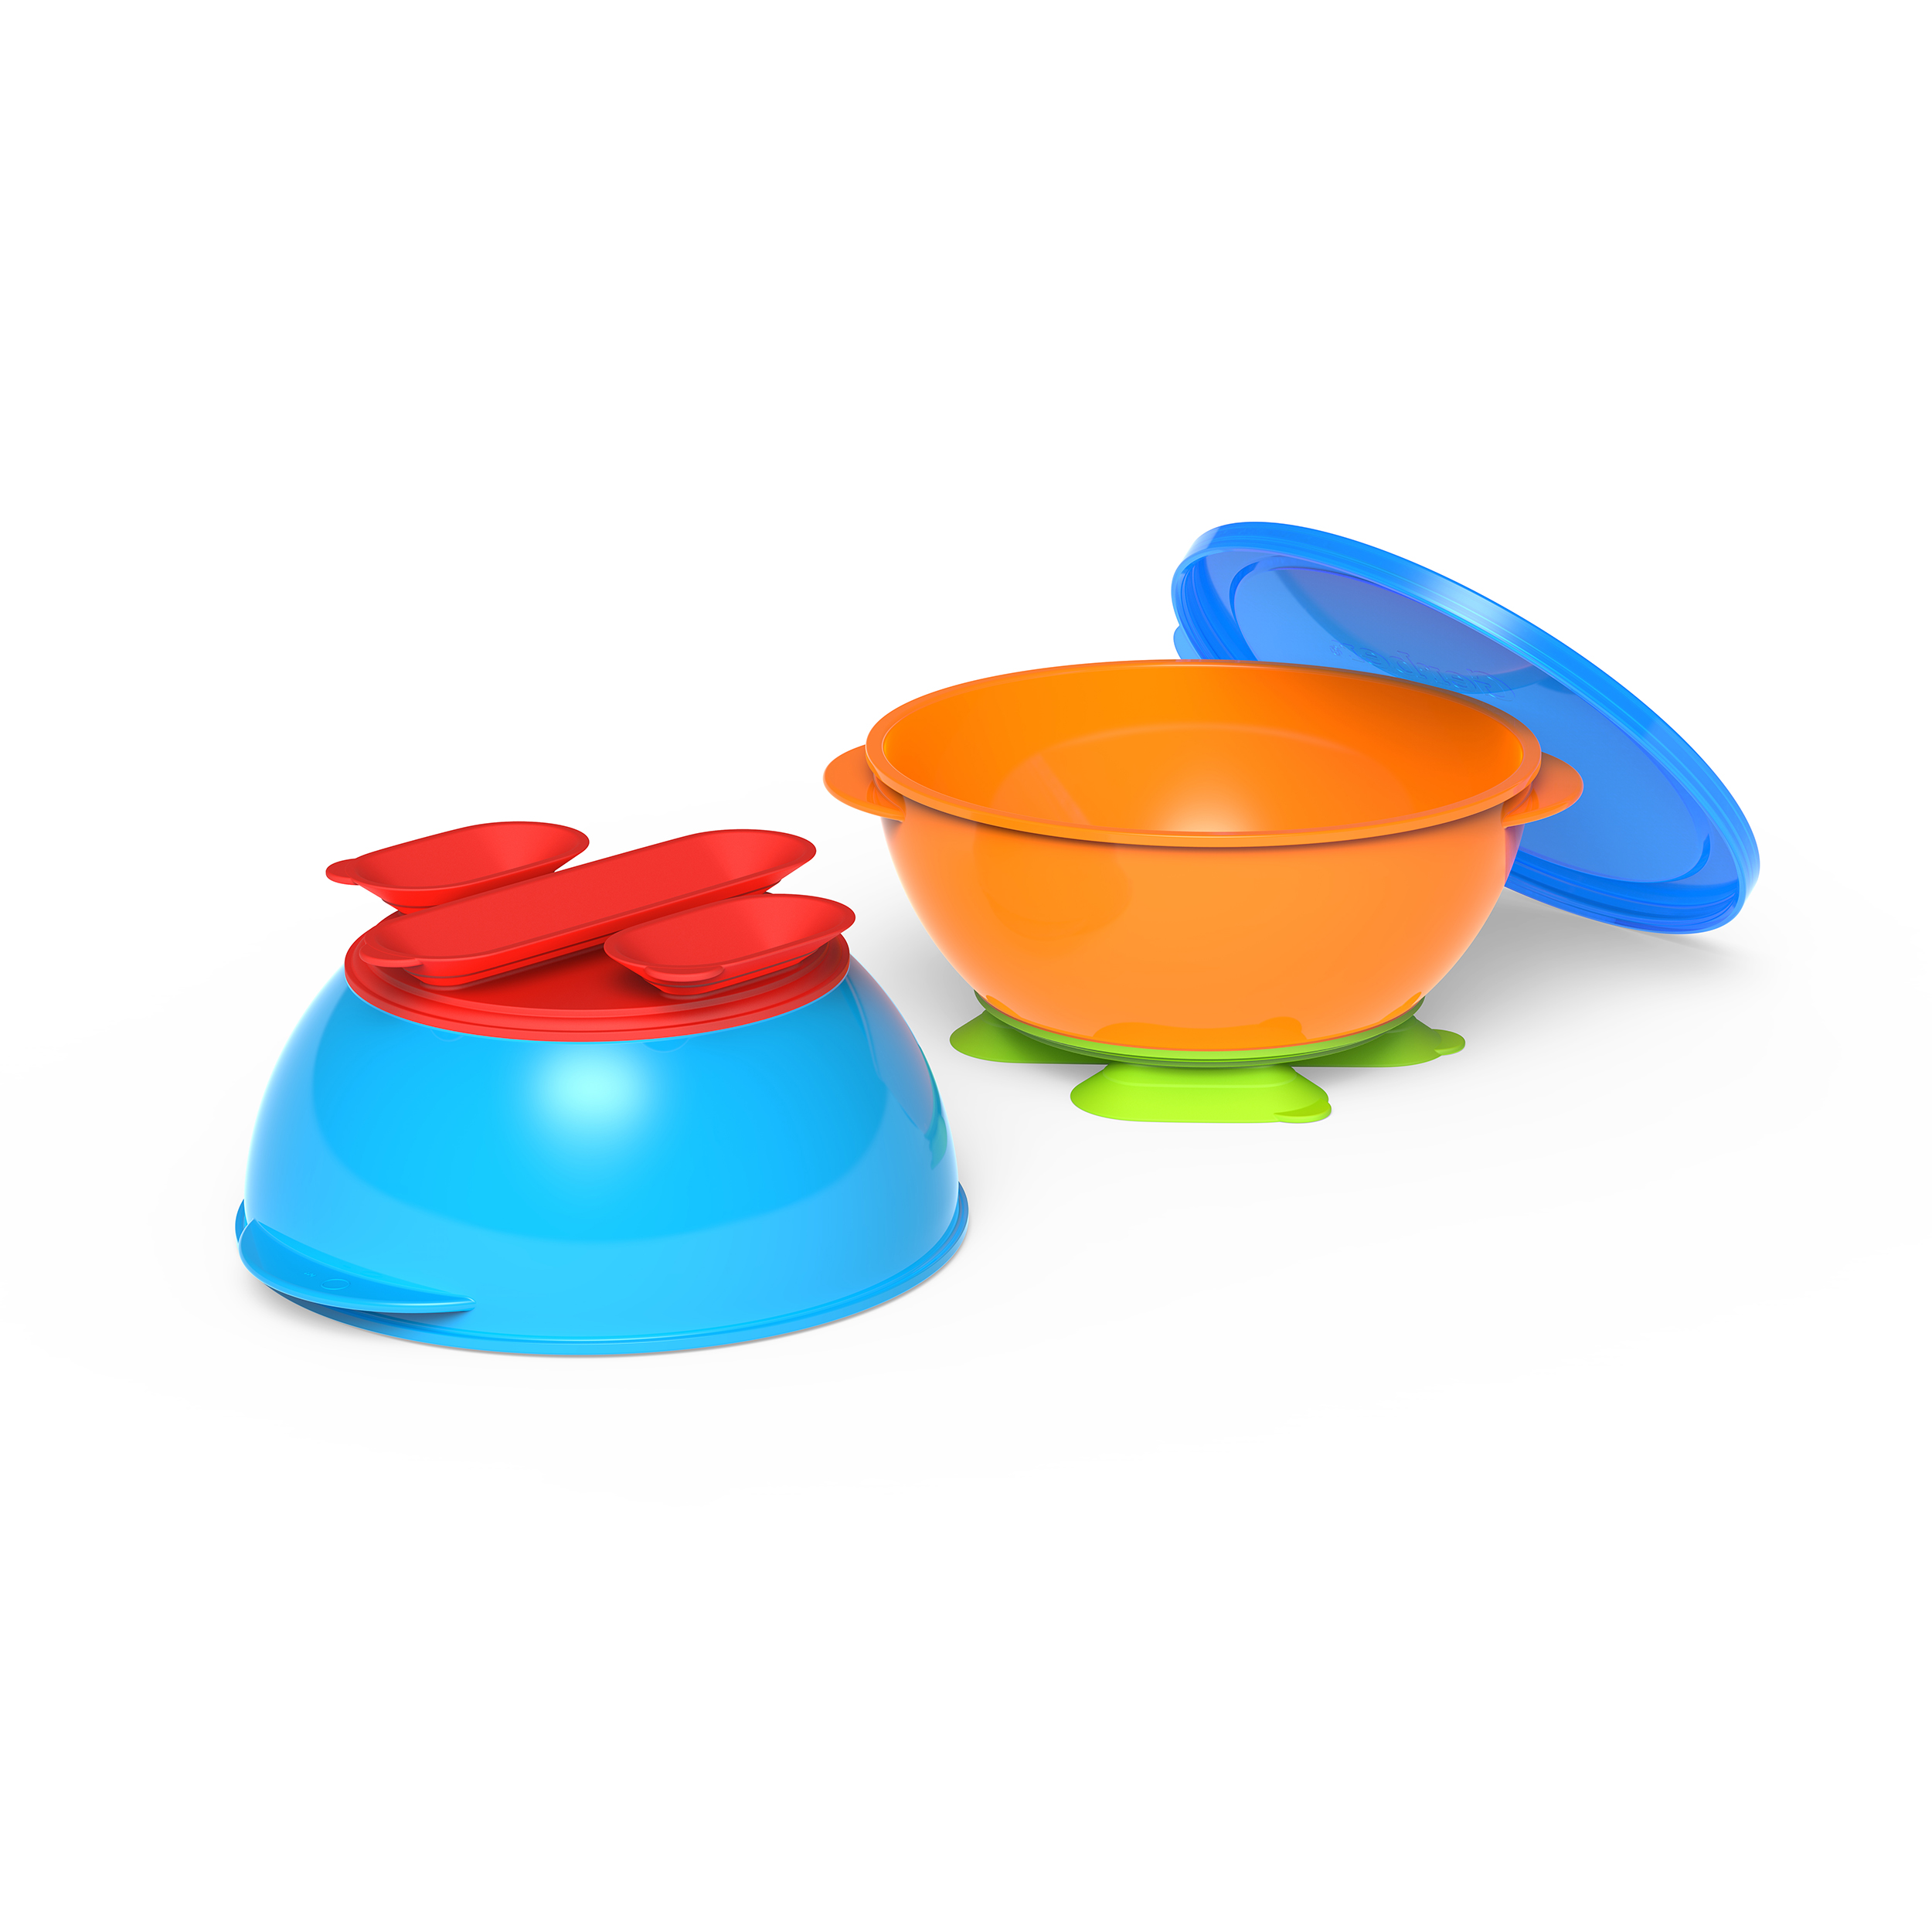 First Essentials by NUK™ Tri-Suction Bowls, Assorted Colors, 2-Pack Product Image 1 of 3